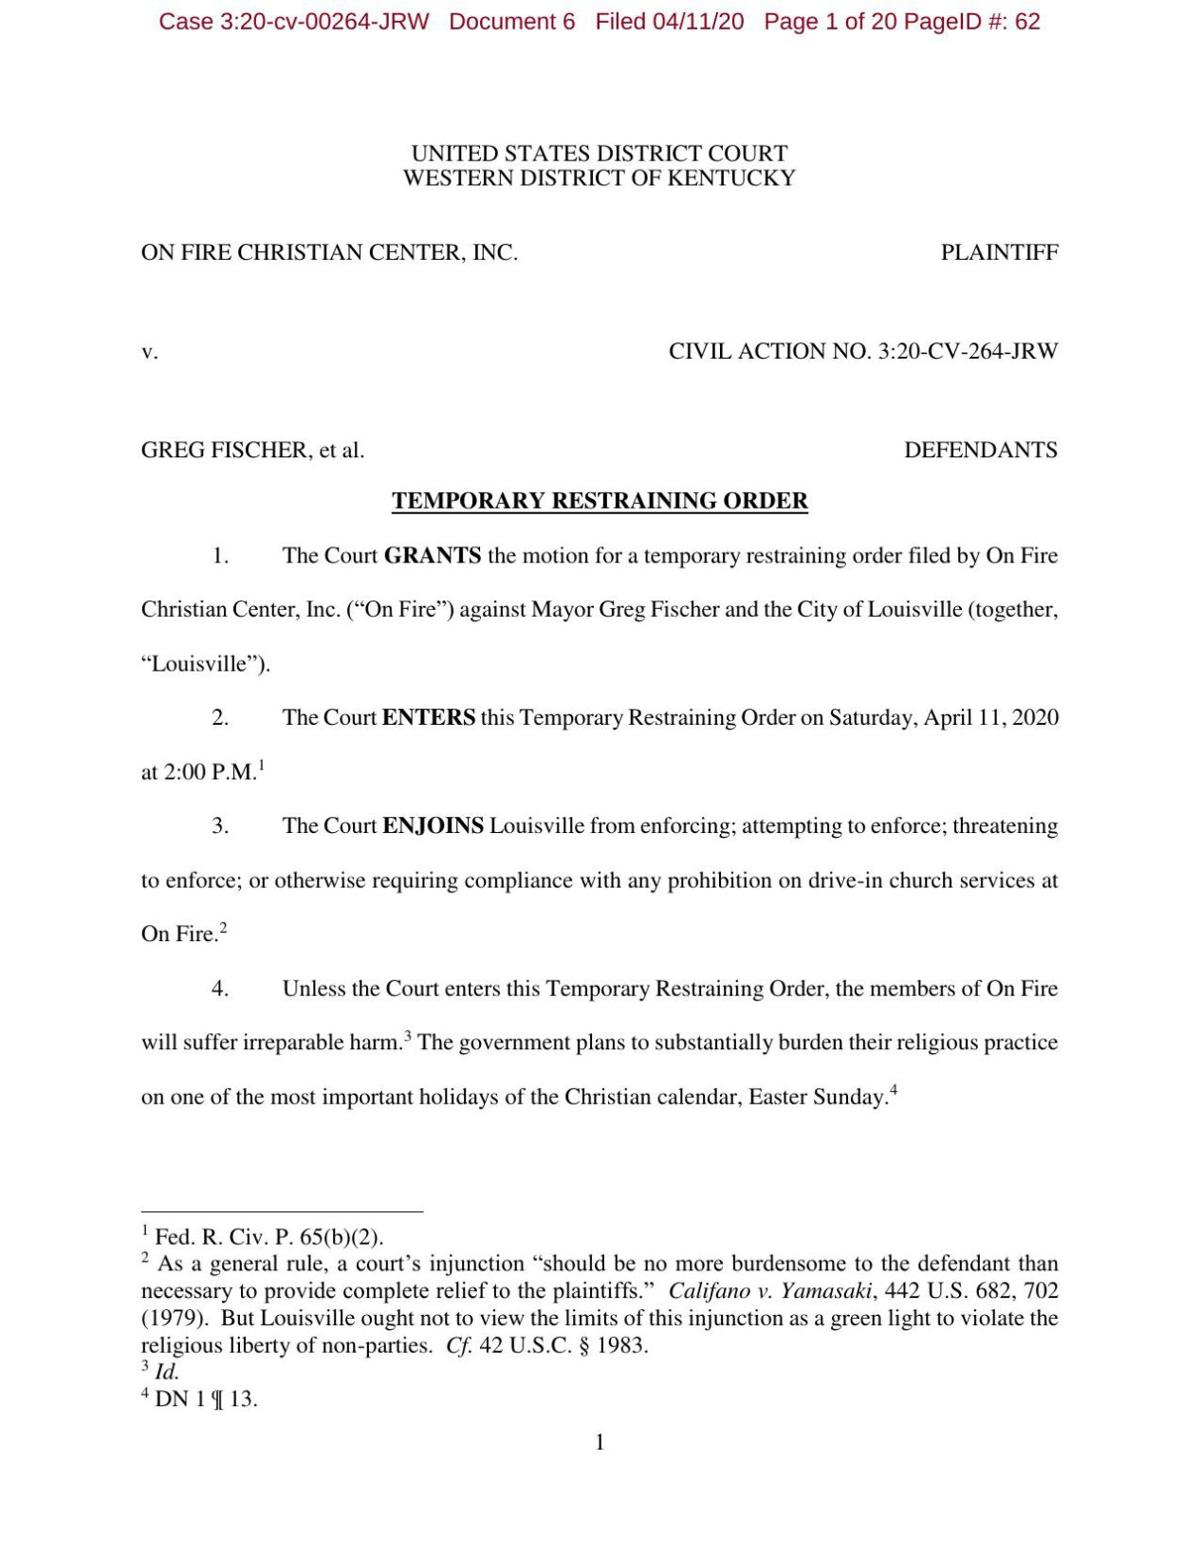 On Fire Church temporary restraining order against Fischer granted